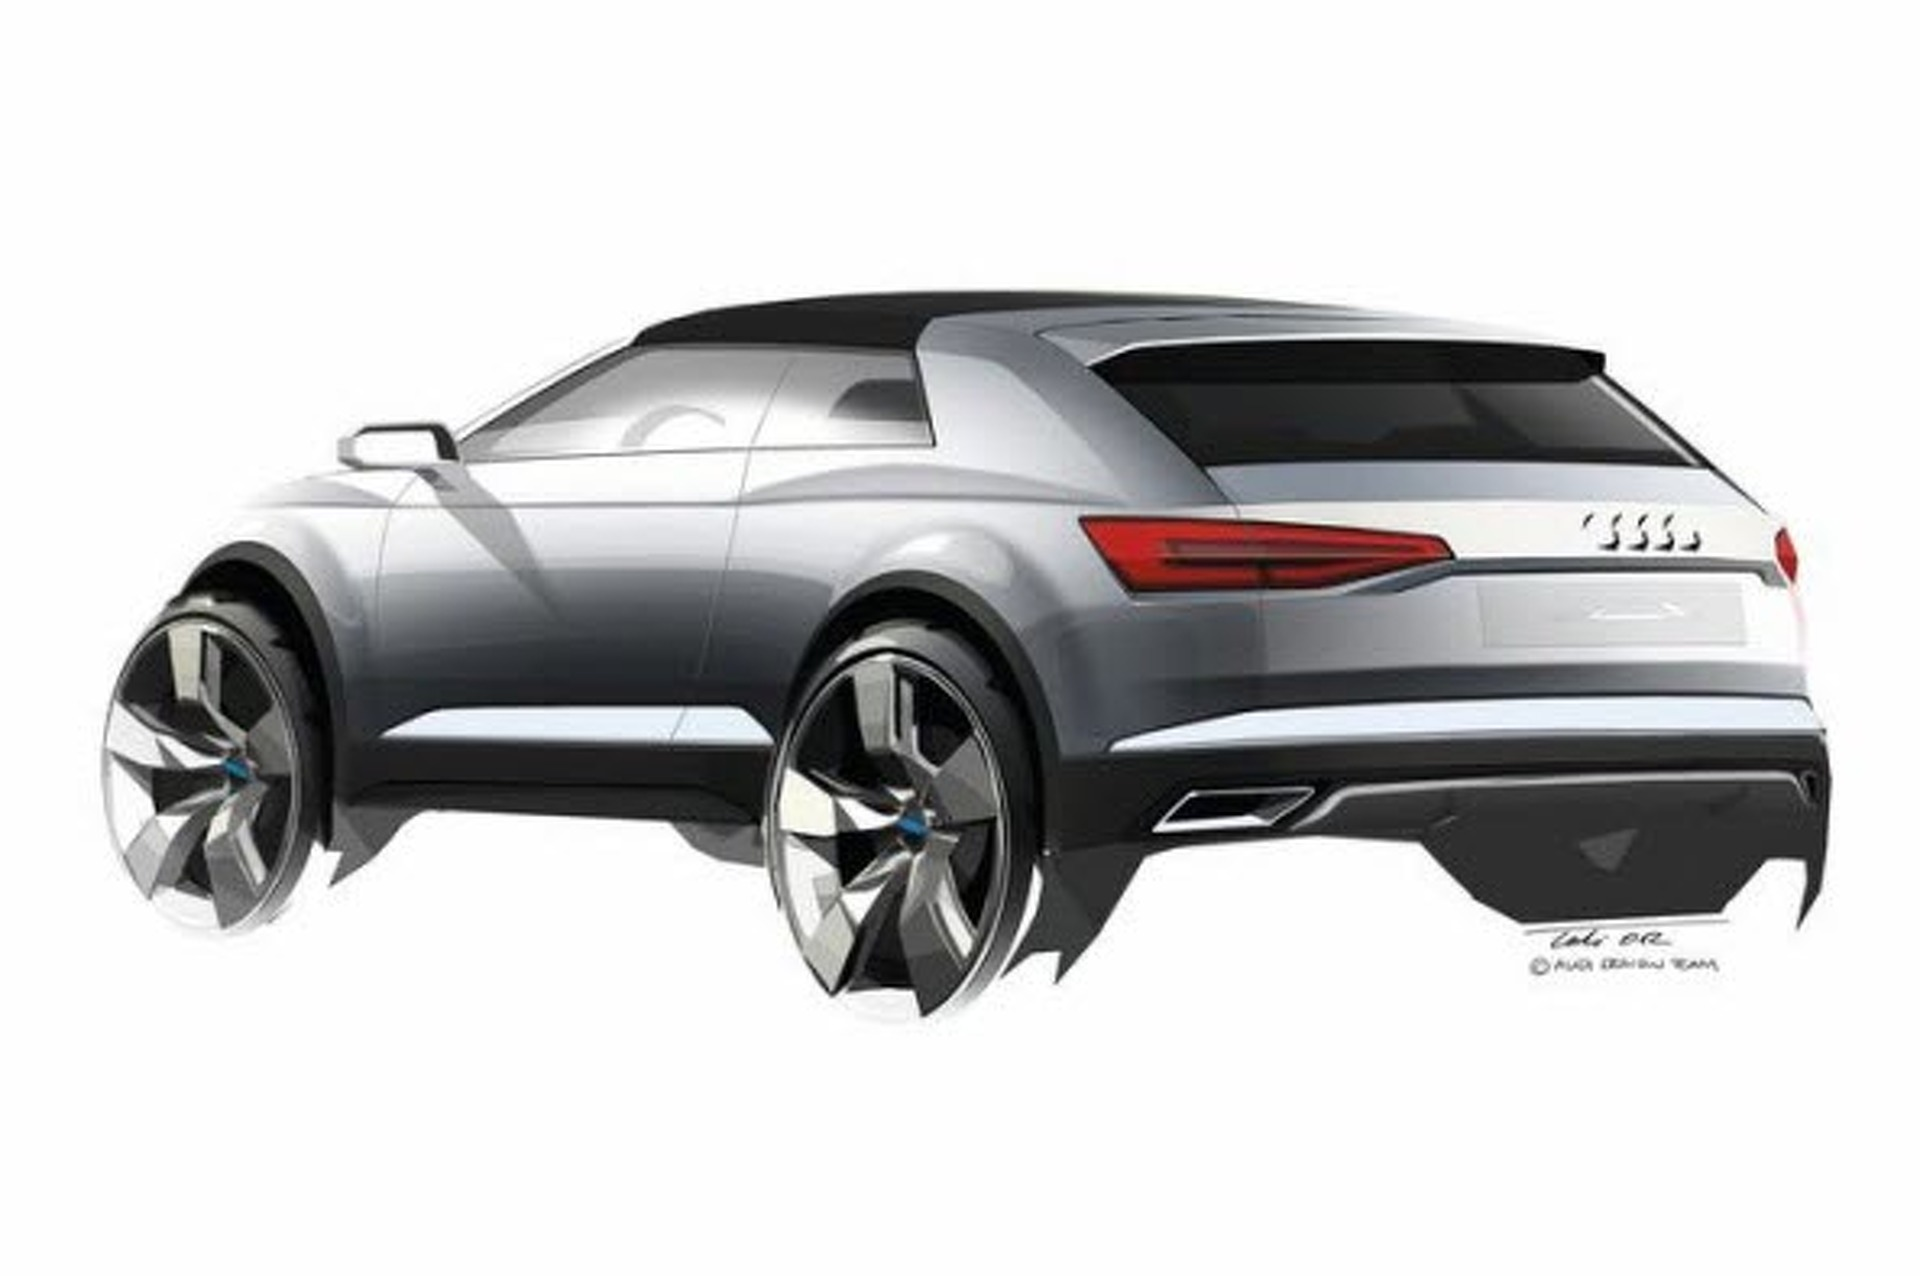 10 Things to Look Forward to from the Audi Q1